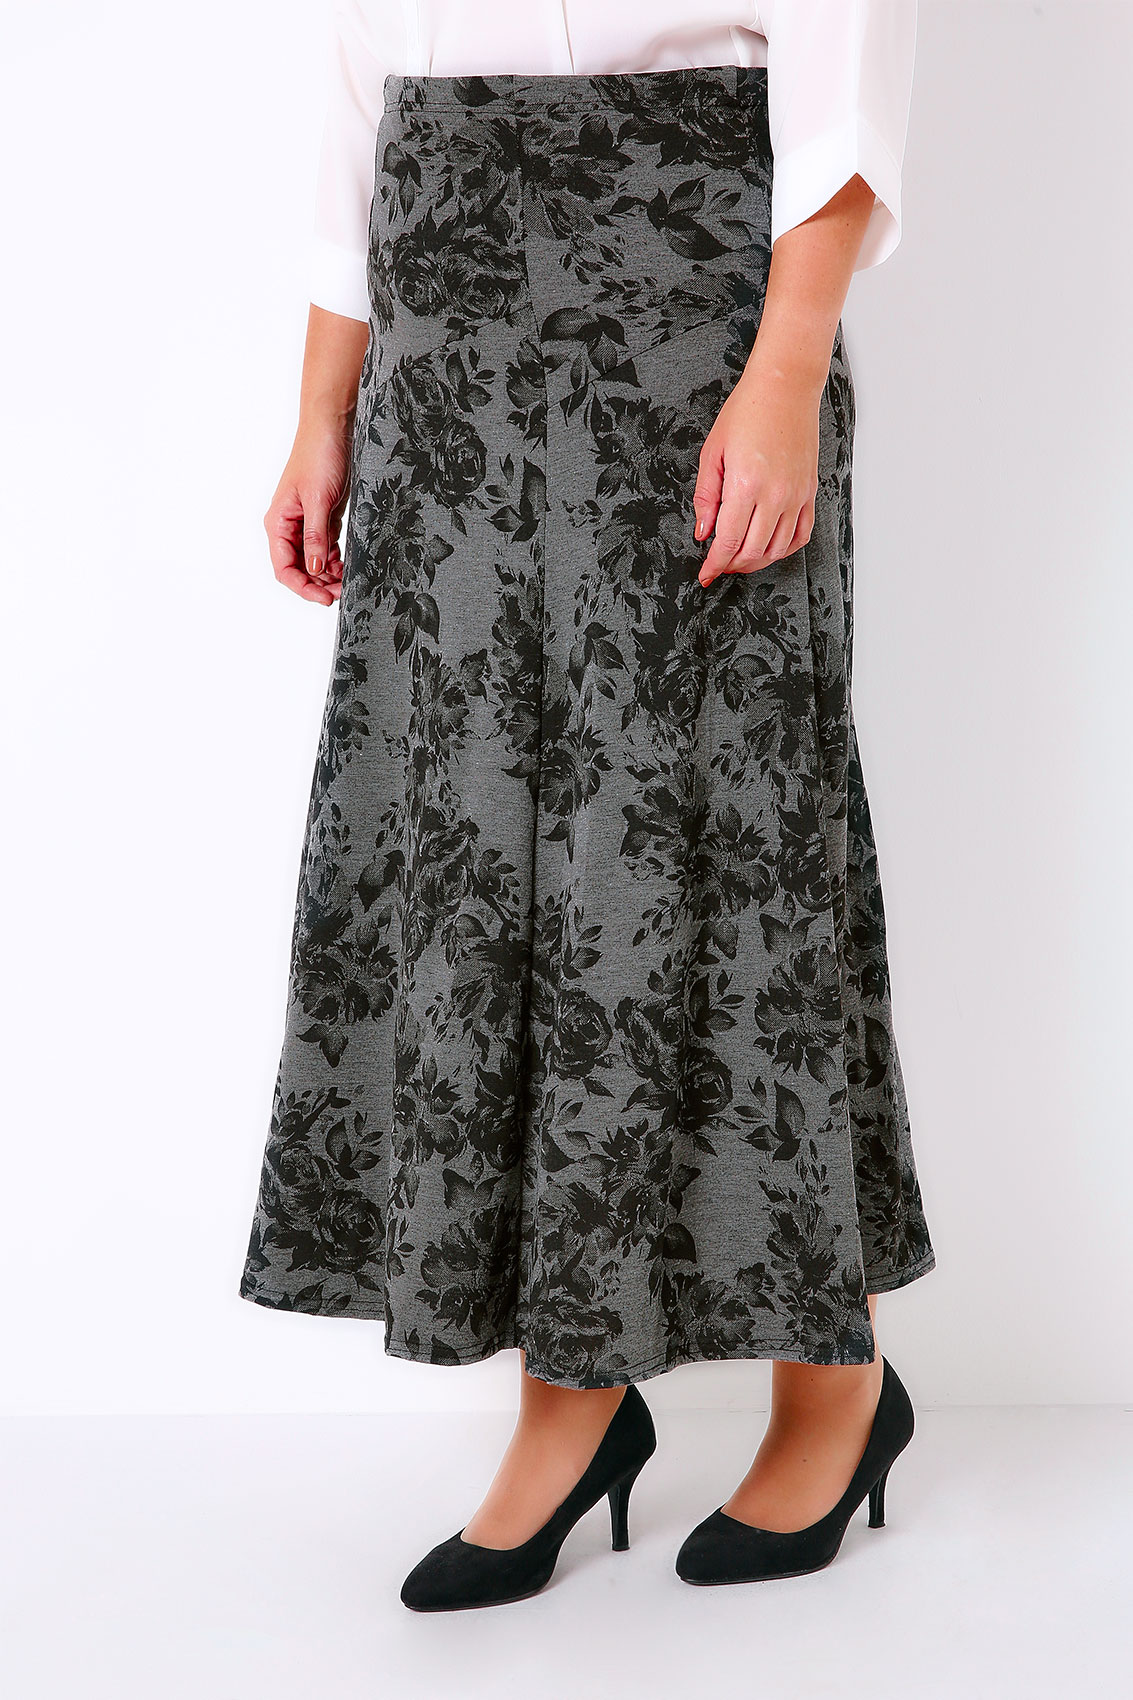 grey marl black floral print jersey maxi skirt with